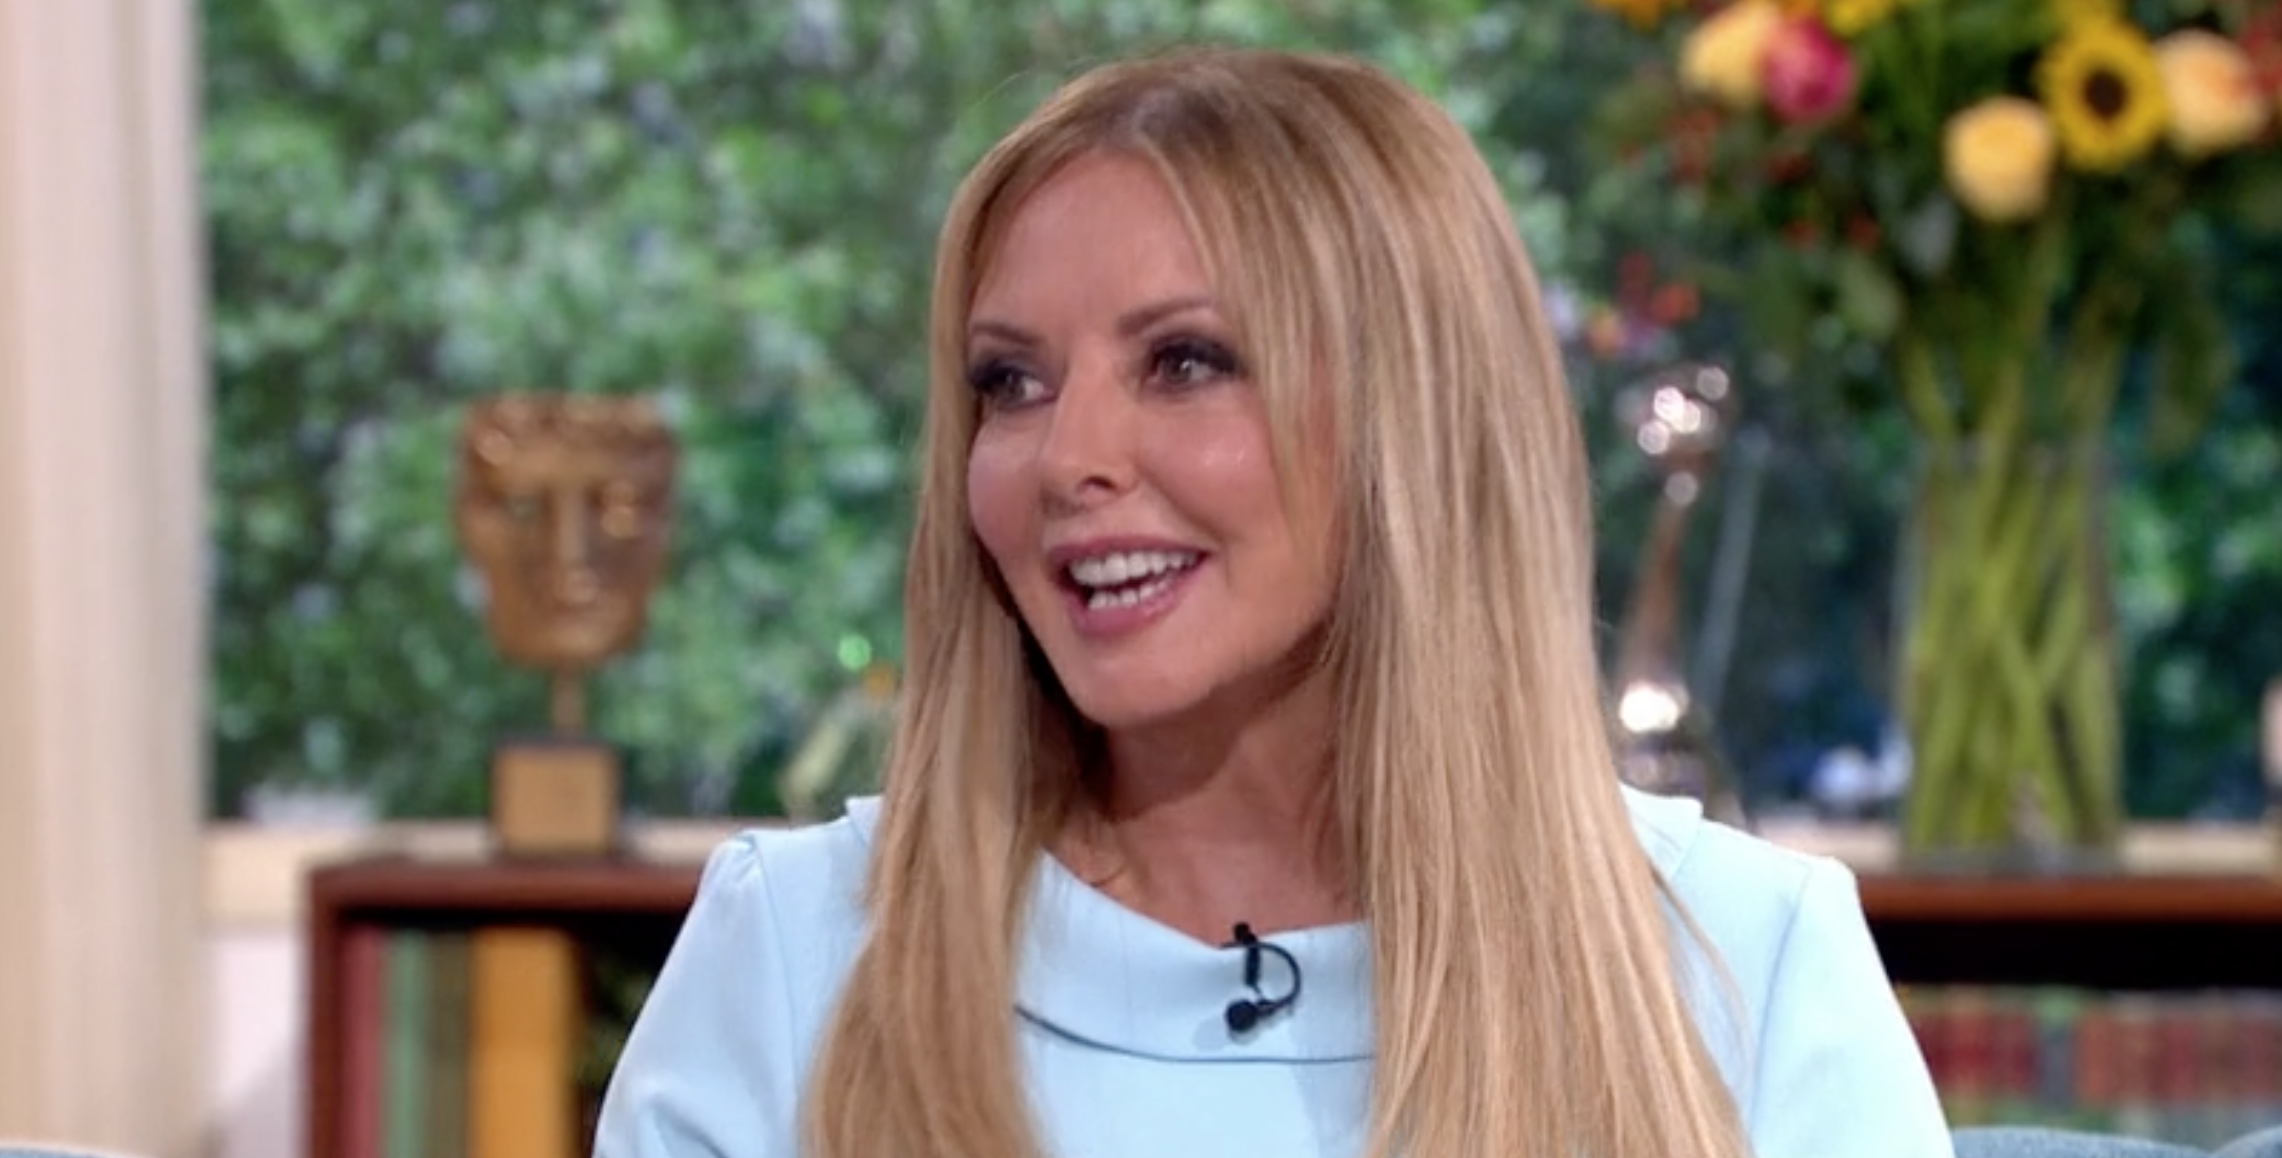 Carol Vorderman slams critics who called her 'mutton dressed as lamb'